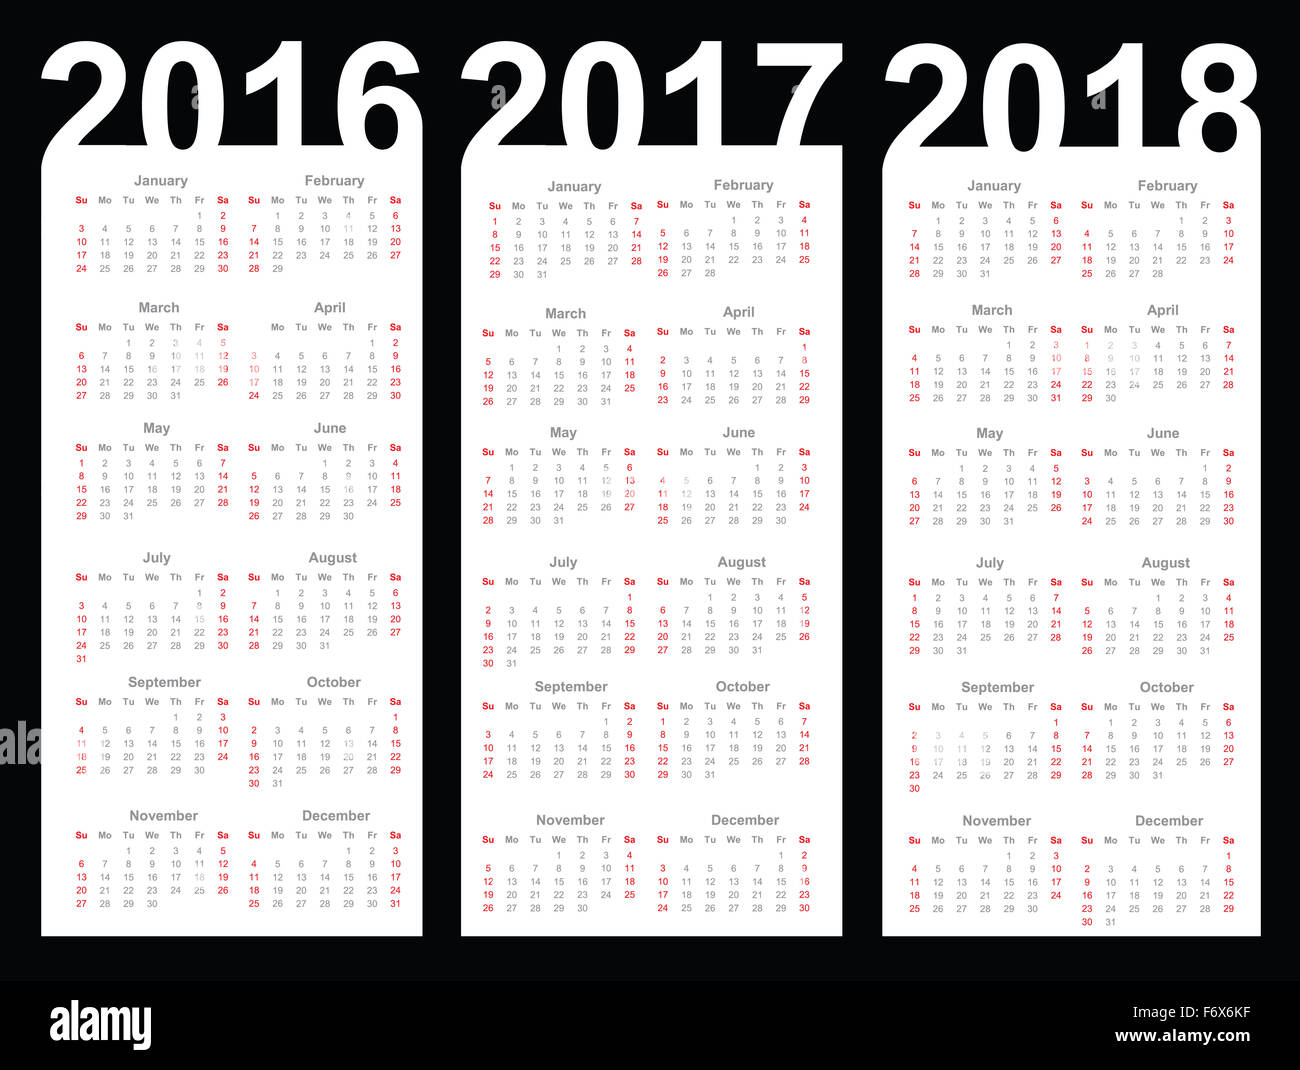 Calendar for 2016, 2017 and 2018 year Stock Photo: 90315779   Alamy